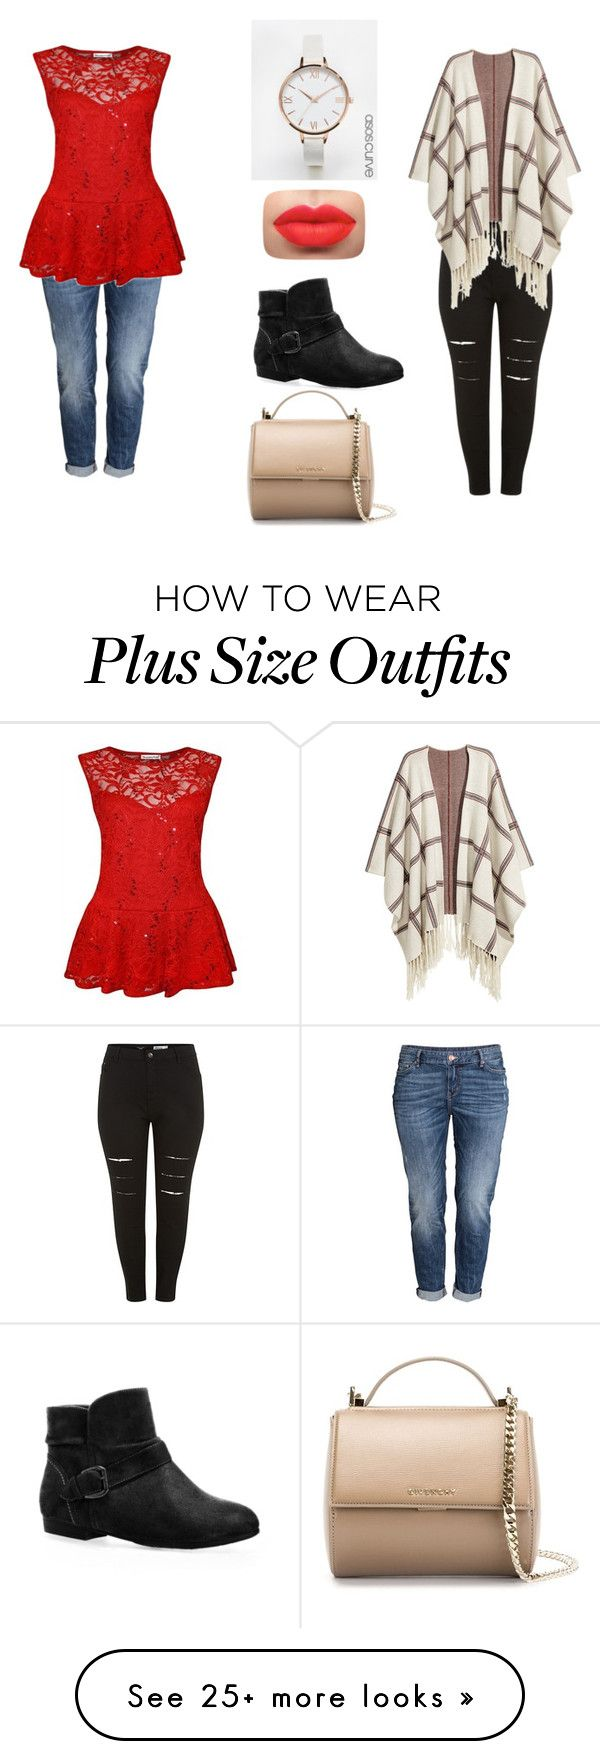 """Which One?????"" by carathebest on Polyvore featuring H&M, ASOS Curve, Avenue and Givenchy"